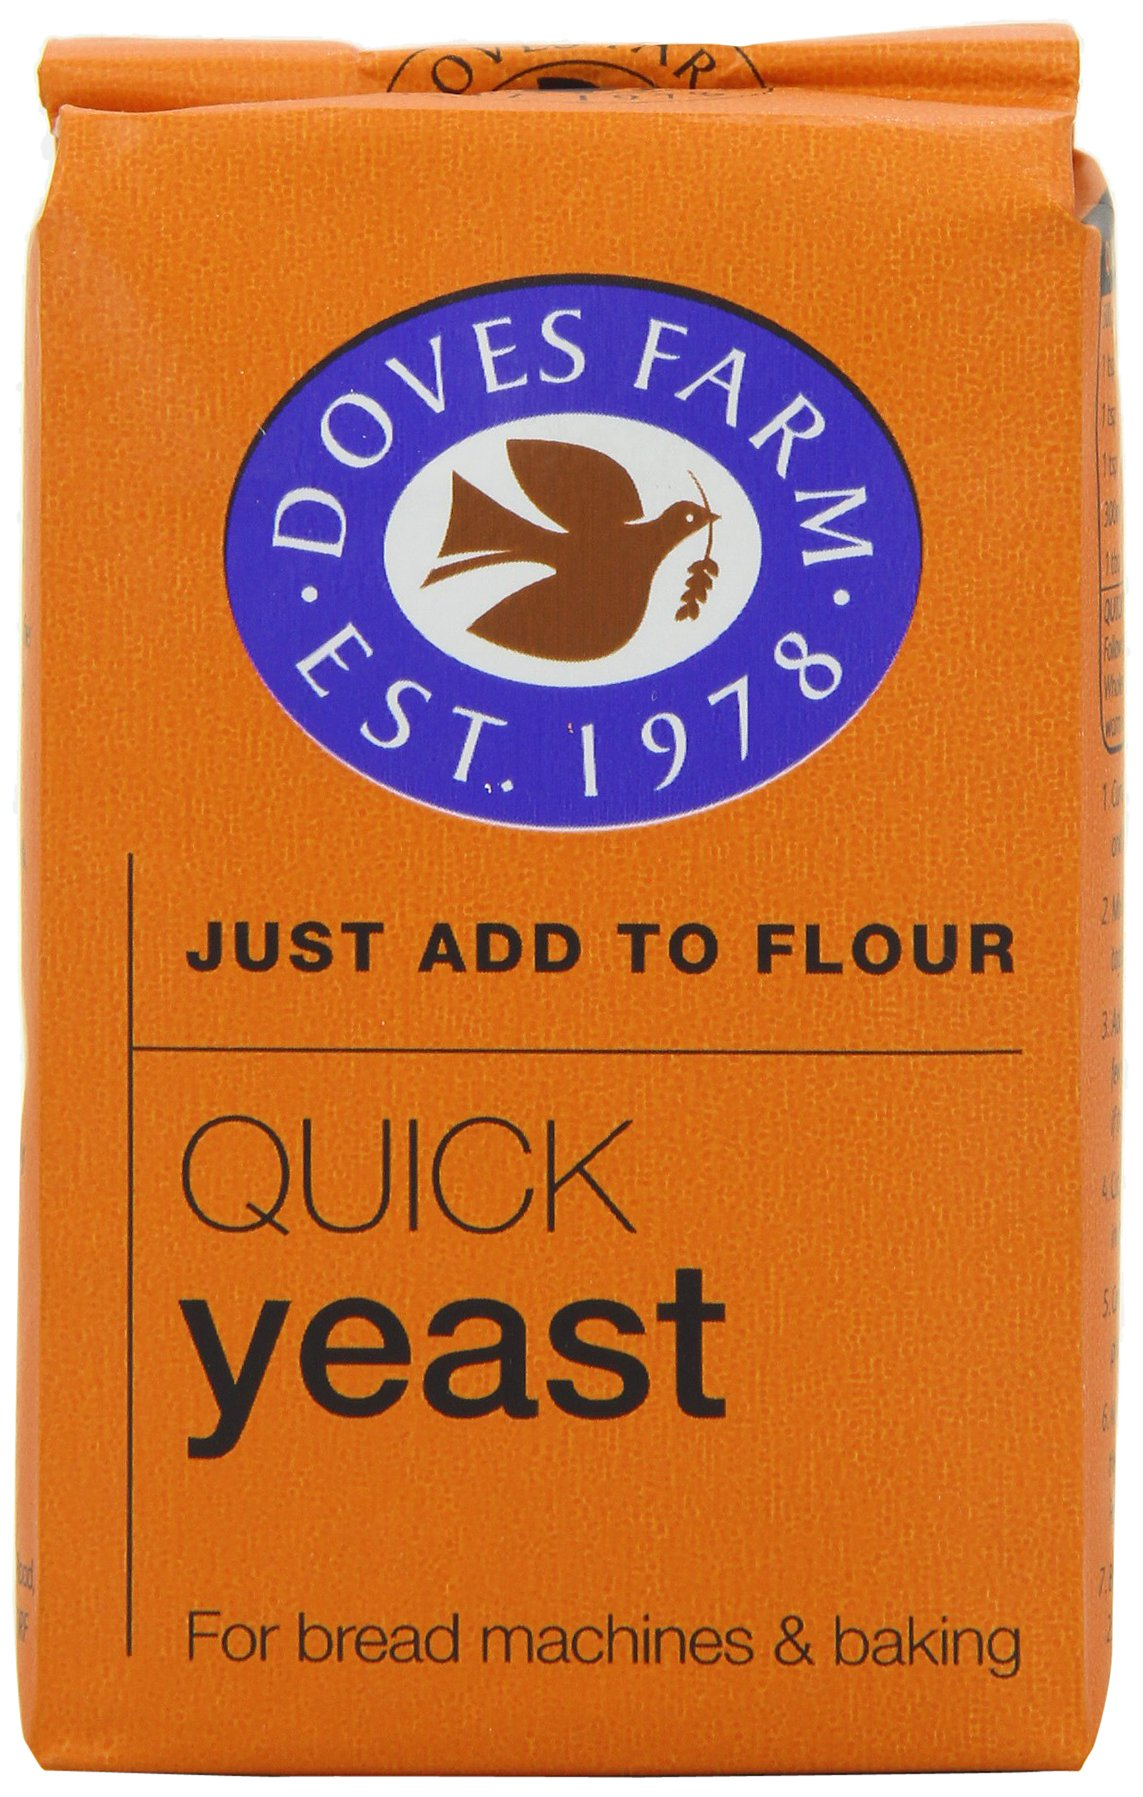 Doves Farm Quick Yeast 125 g (Pack of 8) by Dove